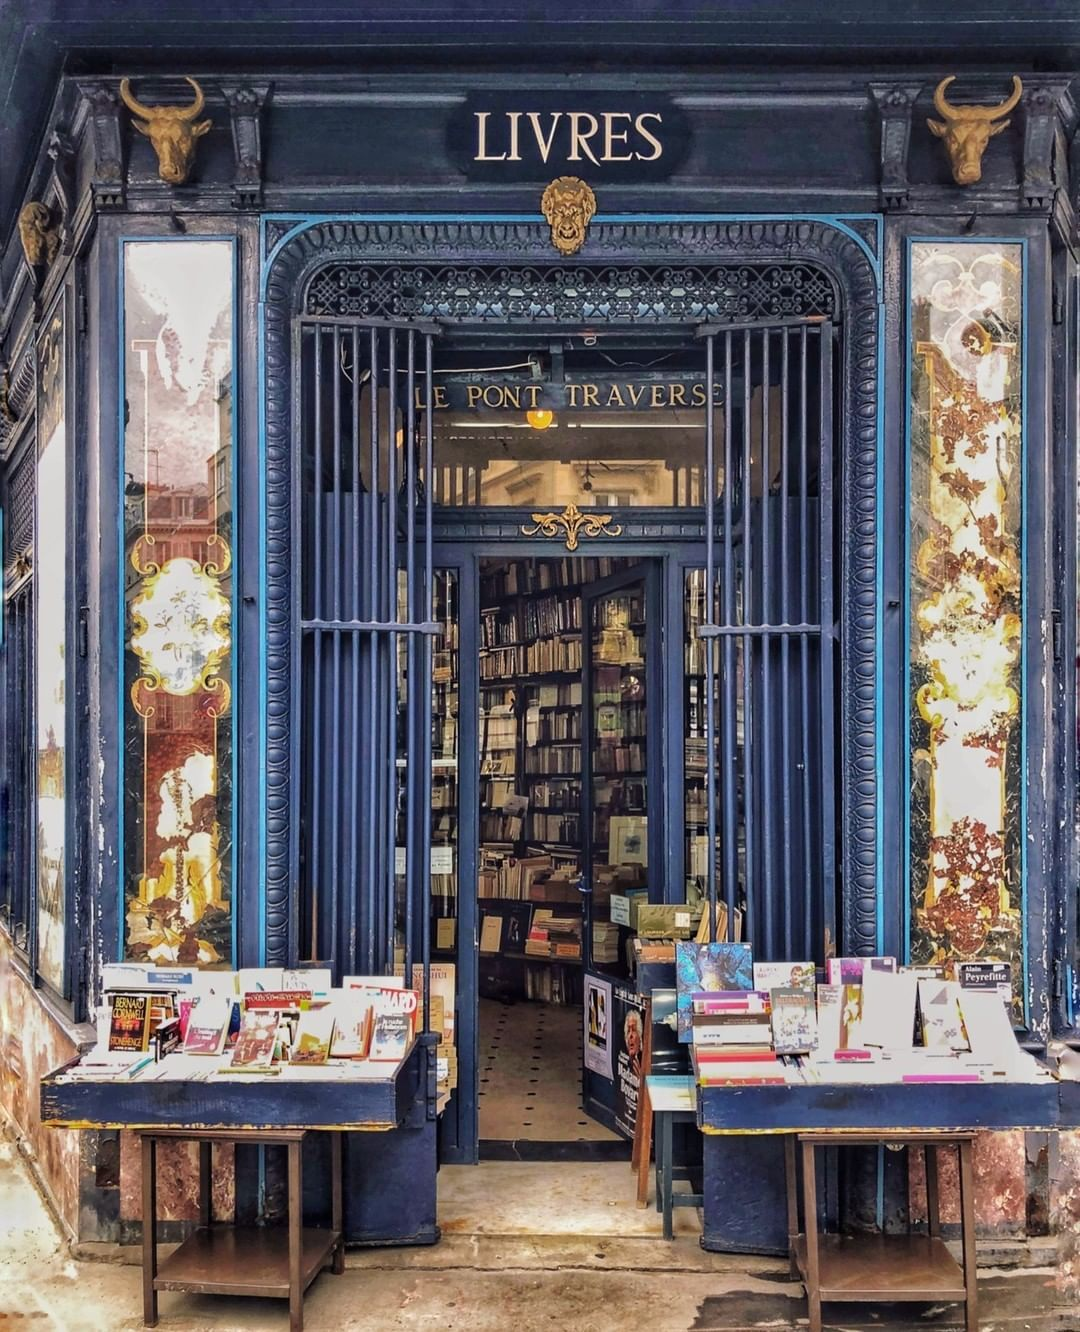 11 Beautiful Bookstores In Paris Every Book Lover Should Visit